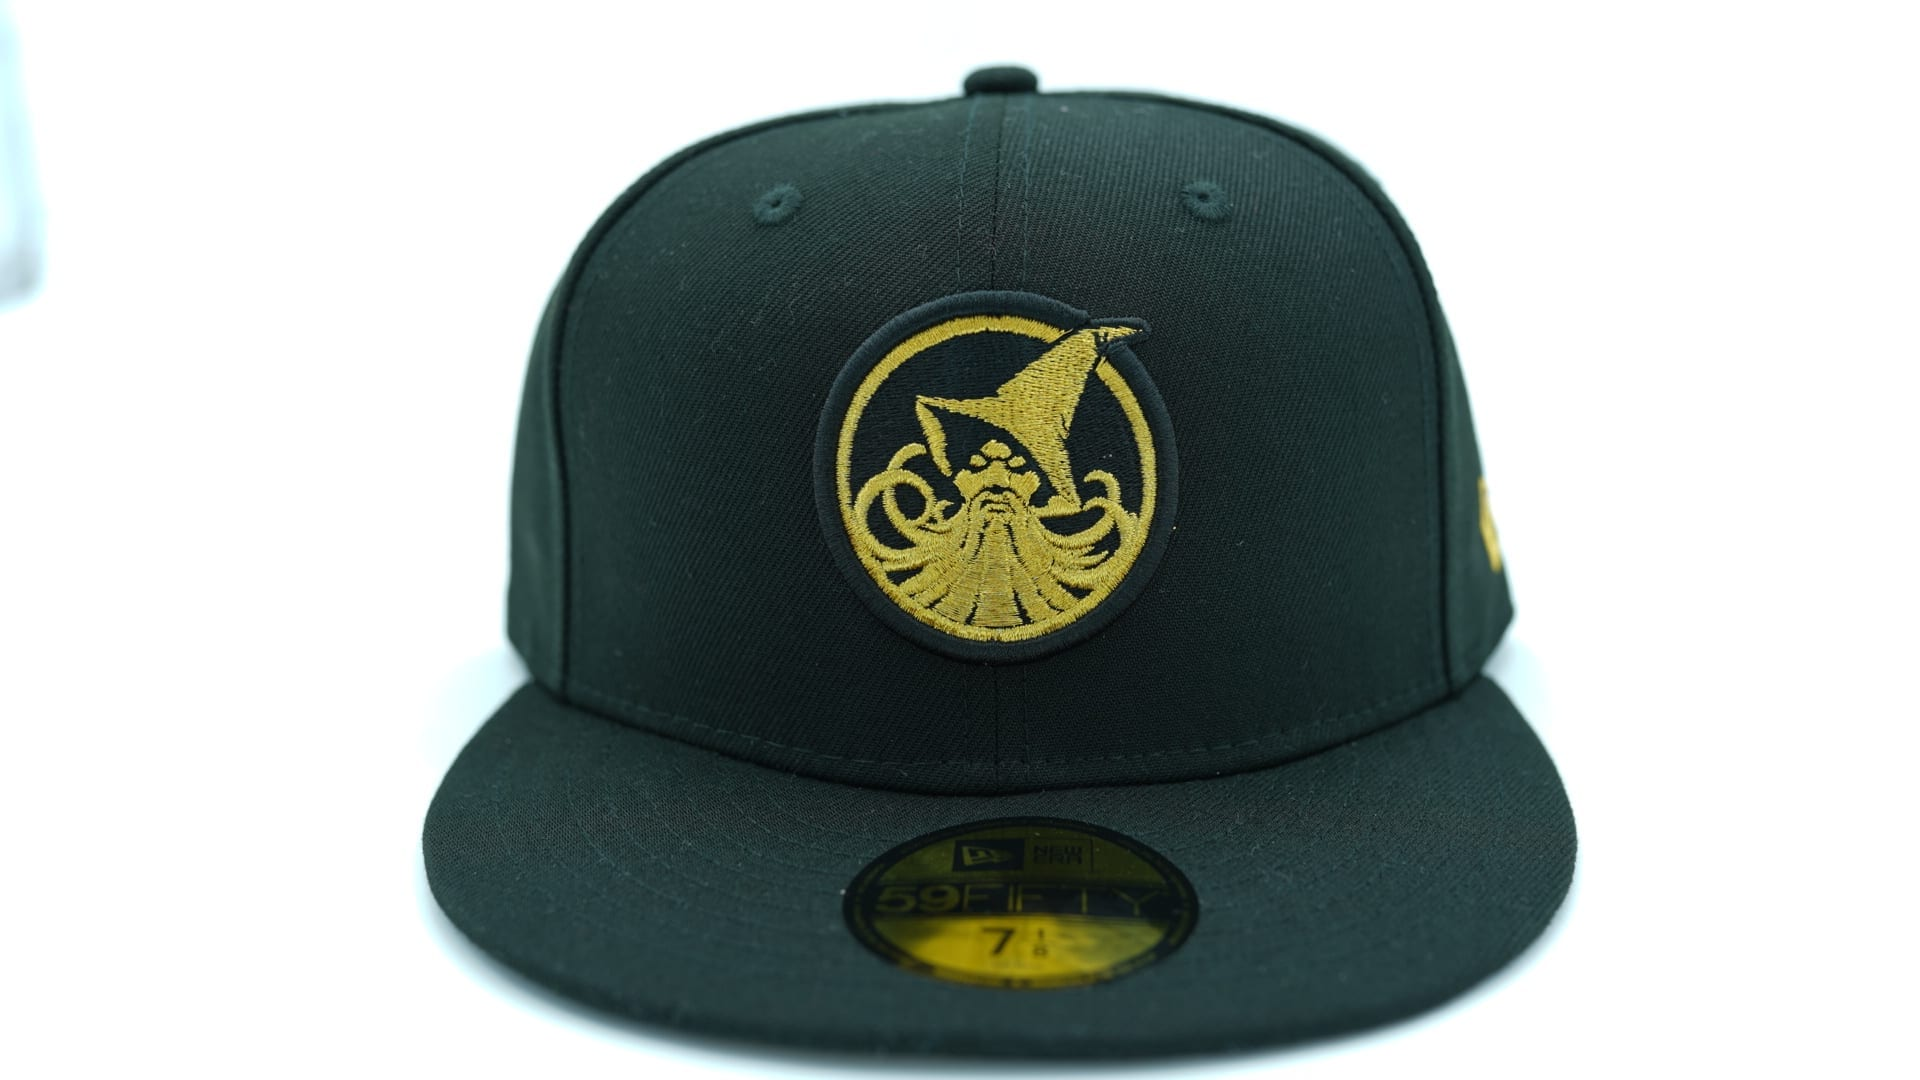 Reno AcesDouble Black 59Fifty Fitted Cap by NEW ERA x MiLB